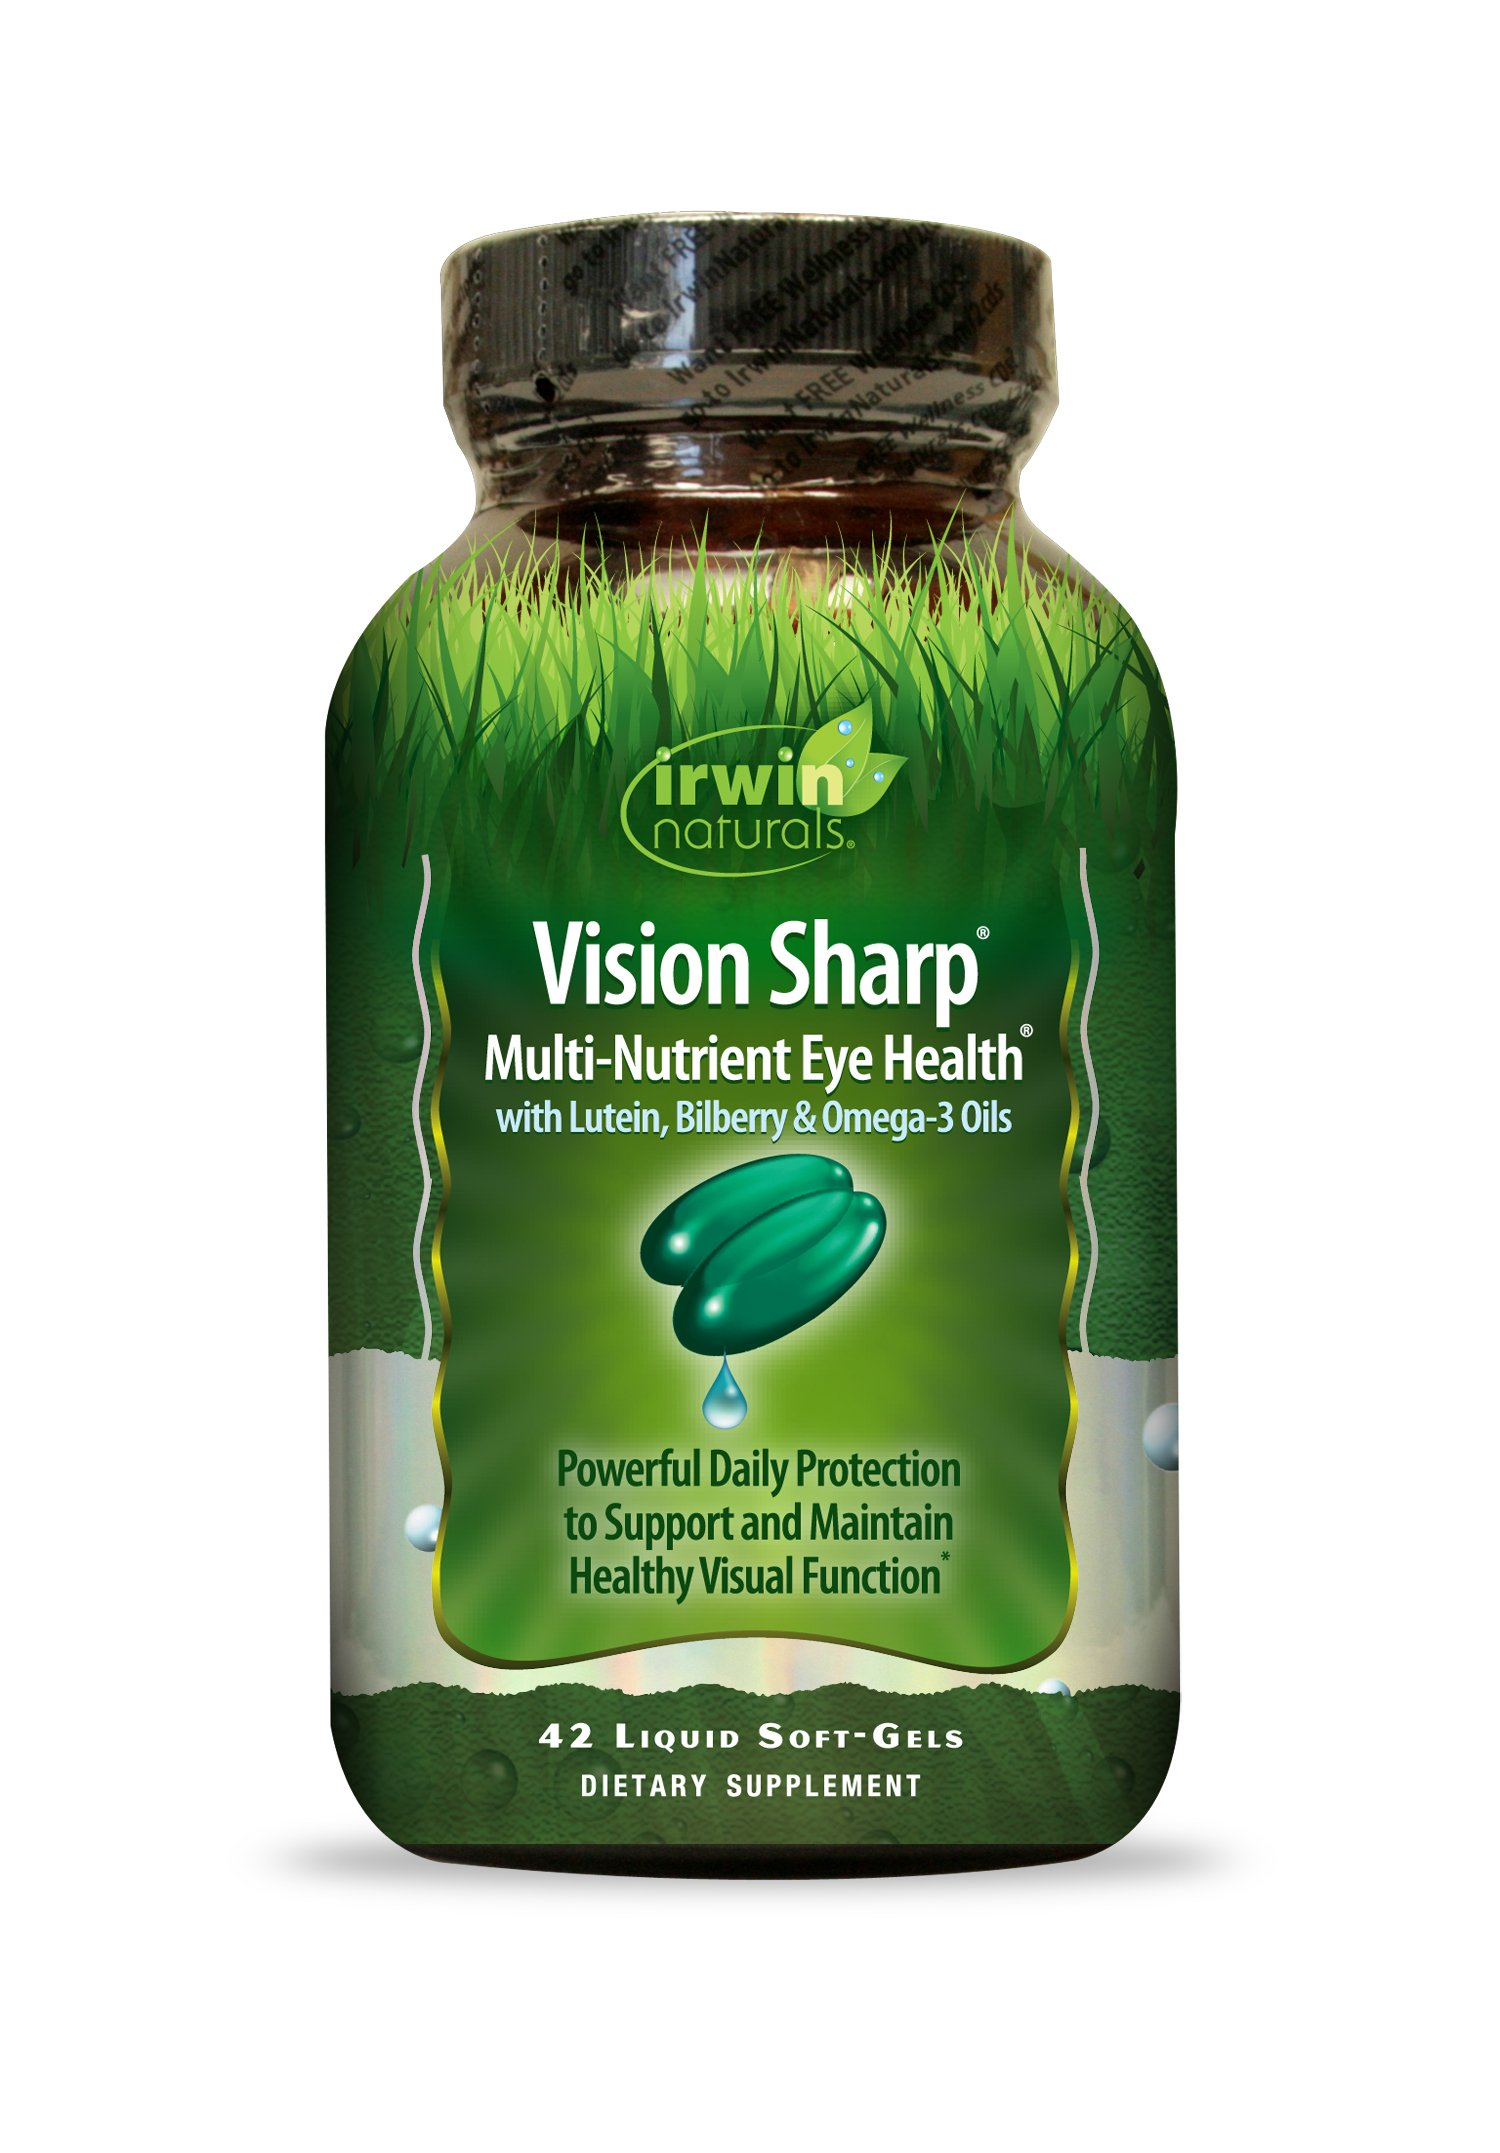 Vision Sharp by Irwin Naturals, Multi-Nutrient Eye Health with Lutein, Bilberry and Omega-3 Oils, 42 Liquid Softgels